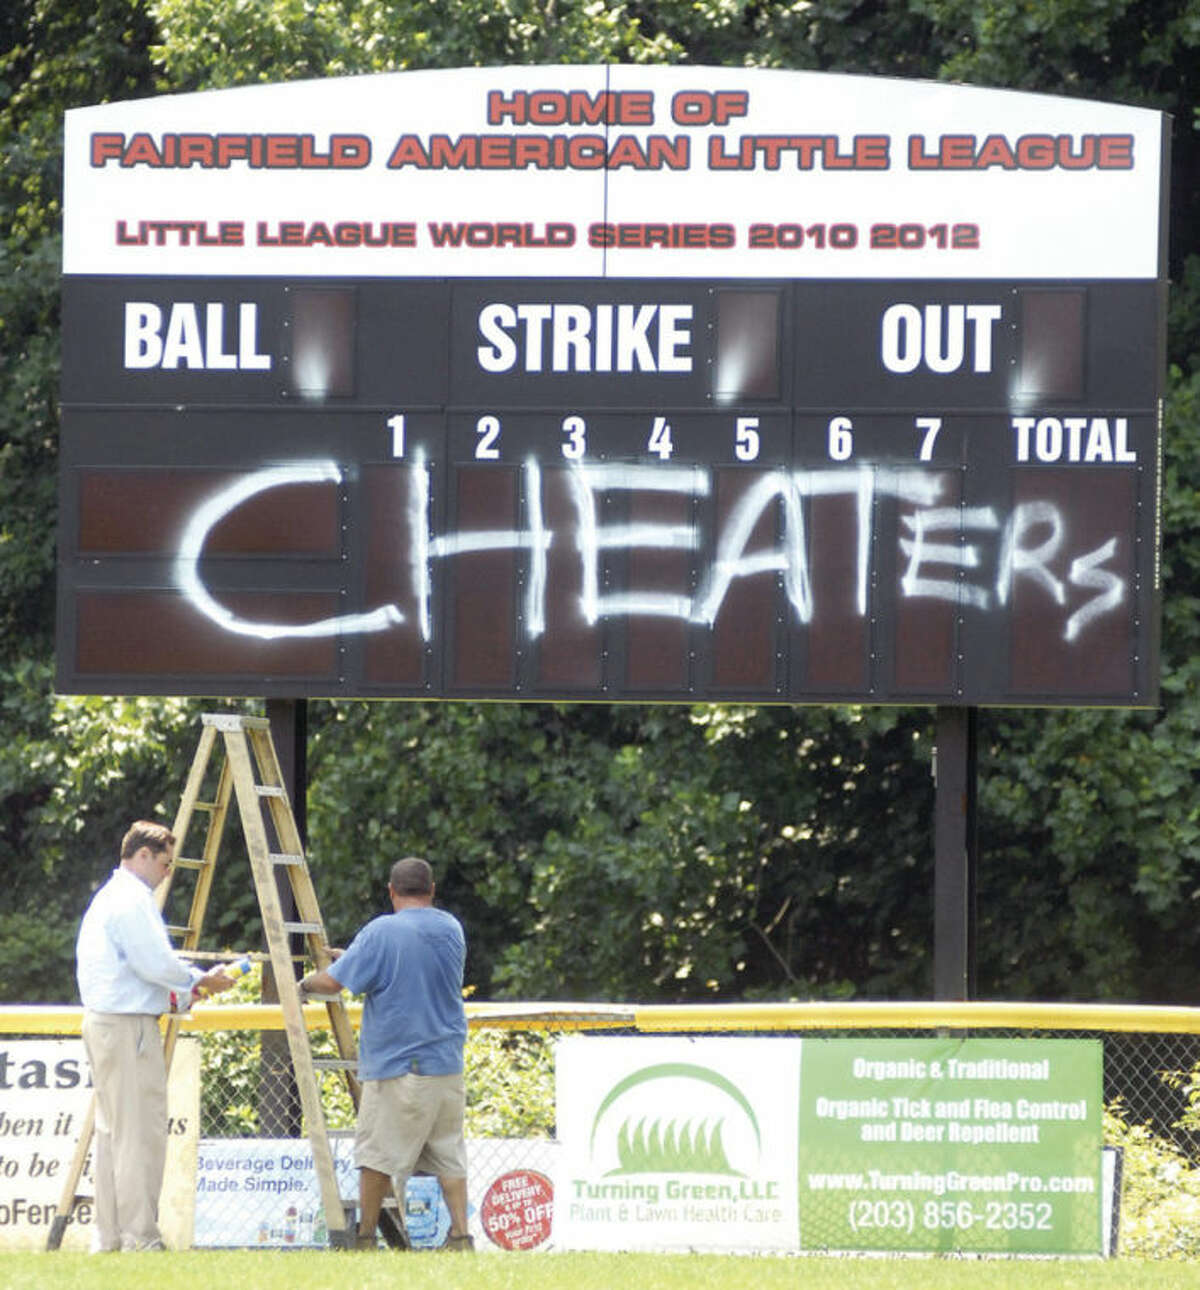 Hour photo/John Nash Members of the Fairfield American Little League coaching staff survey the damage done by vandals in the wake of the team's Section 1/Division 1 championship win over Norwalk.